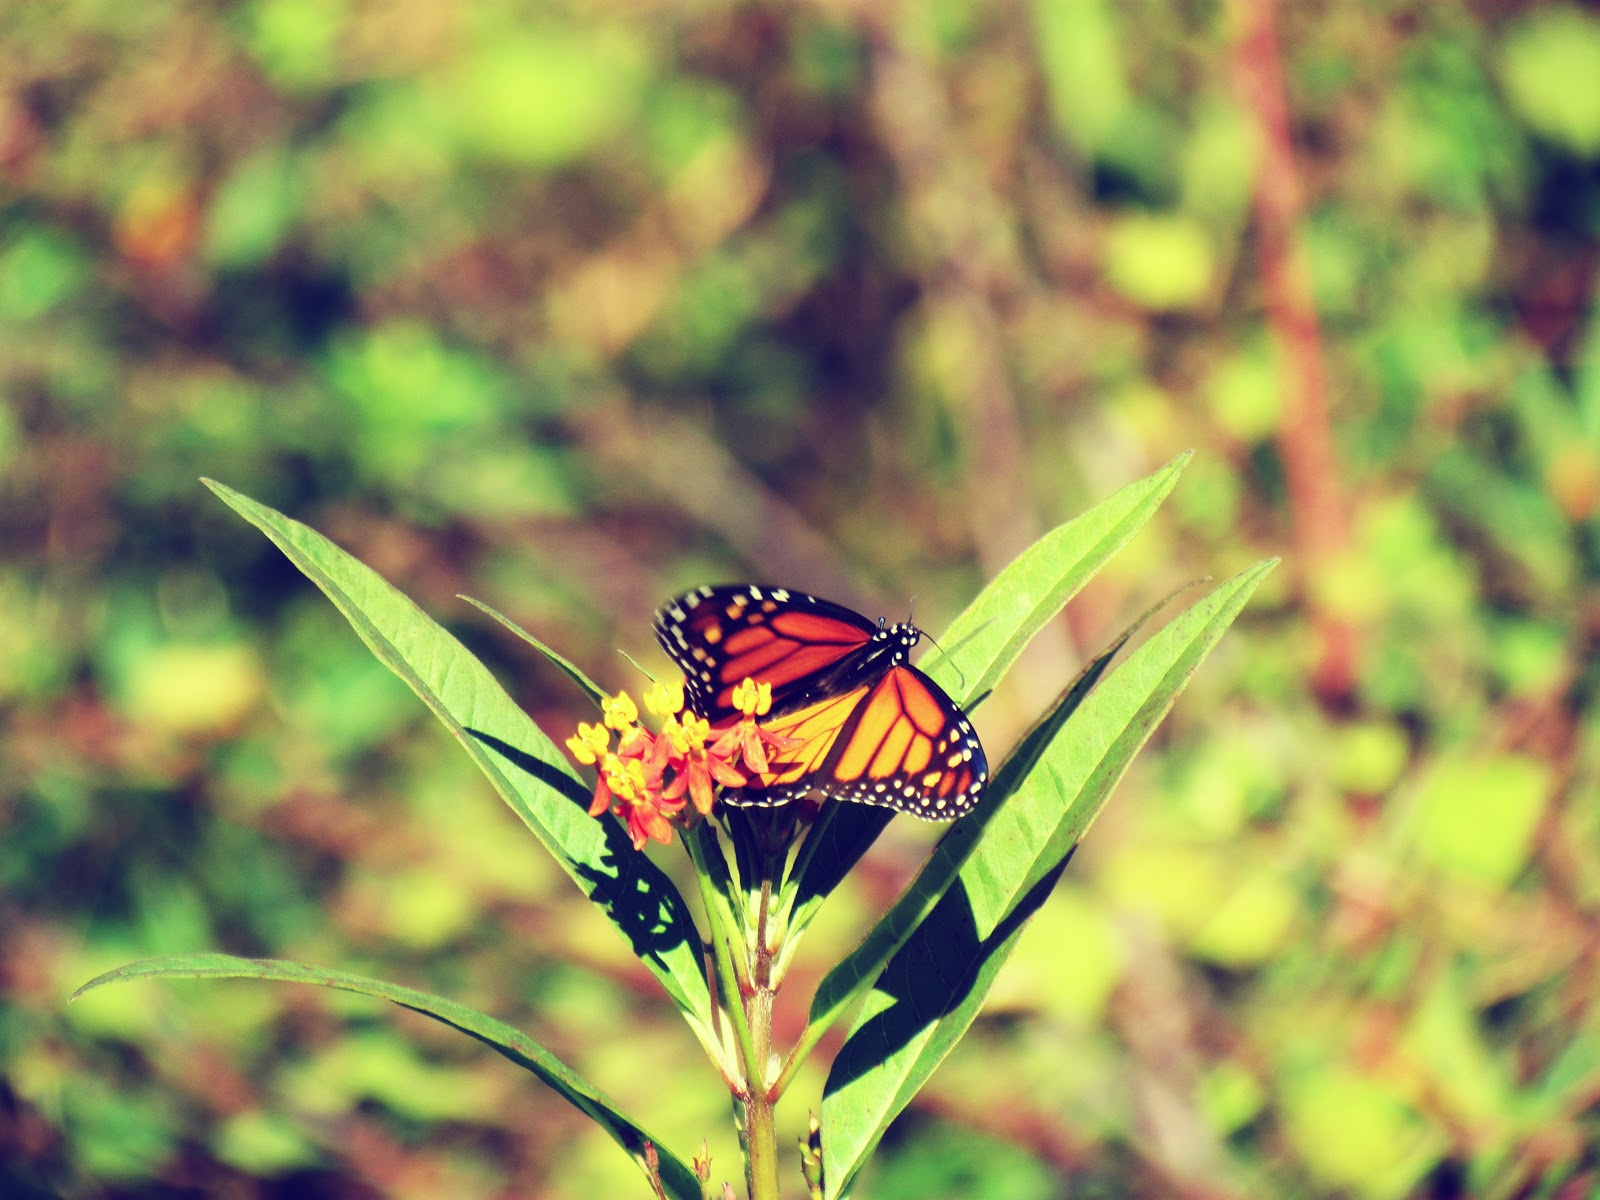 An orange and red winged butterfly creature pollinating flowers in the meadow